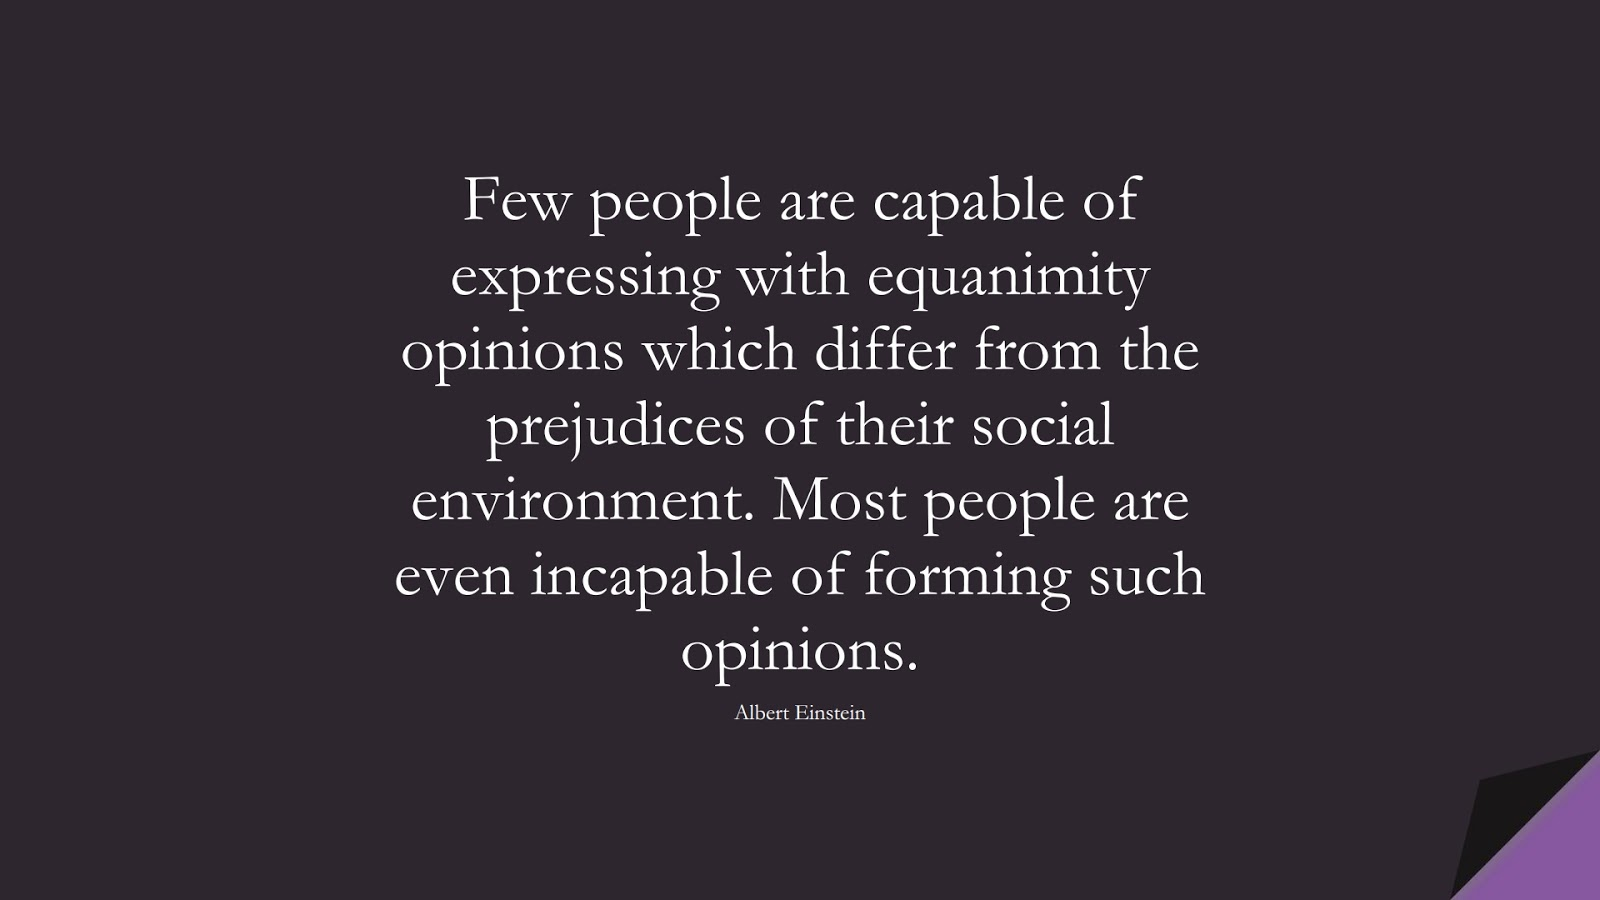 Few people are capable of expressing with equanimity opinions which differ from the prejudices of their social environment. Most people are even incapable of forming such opinions. (Albert Einstein);  #AlbertEnsteinQuotes